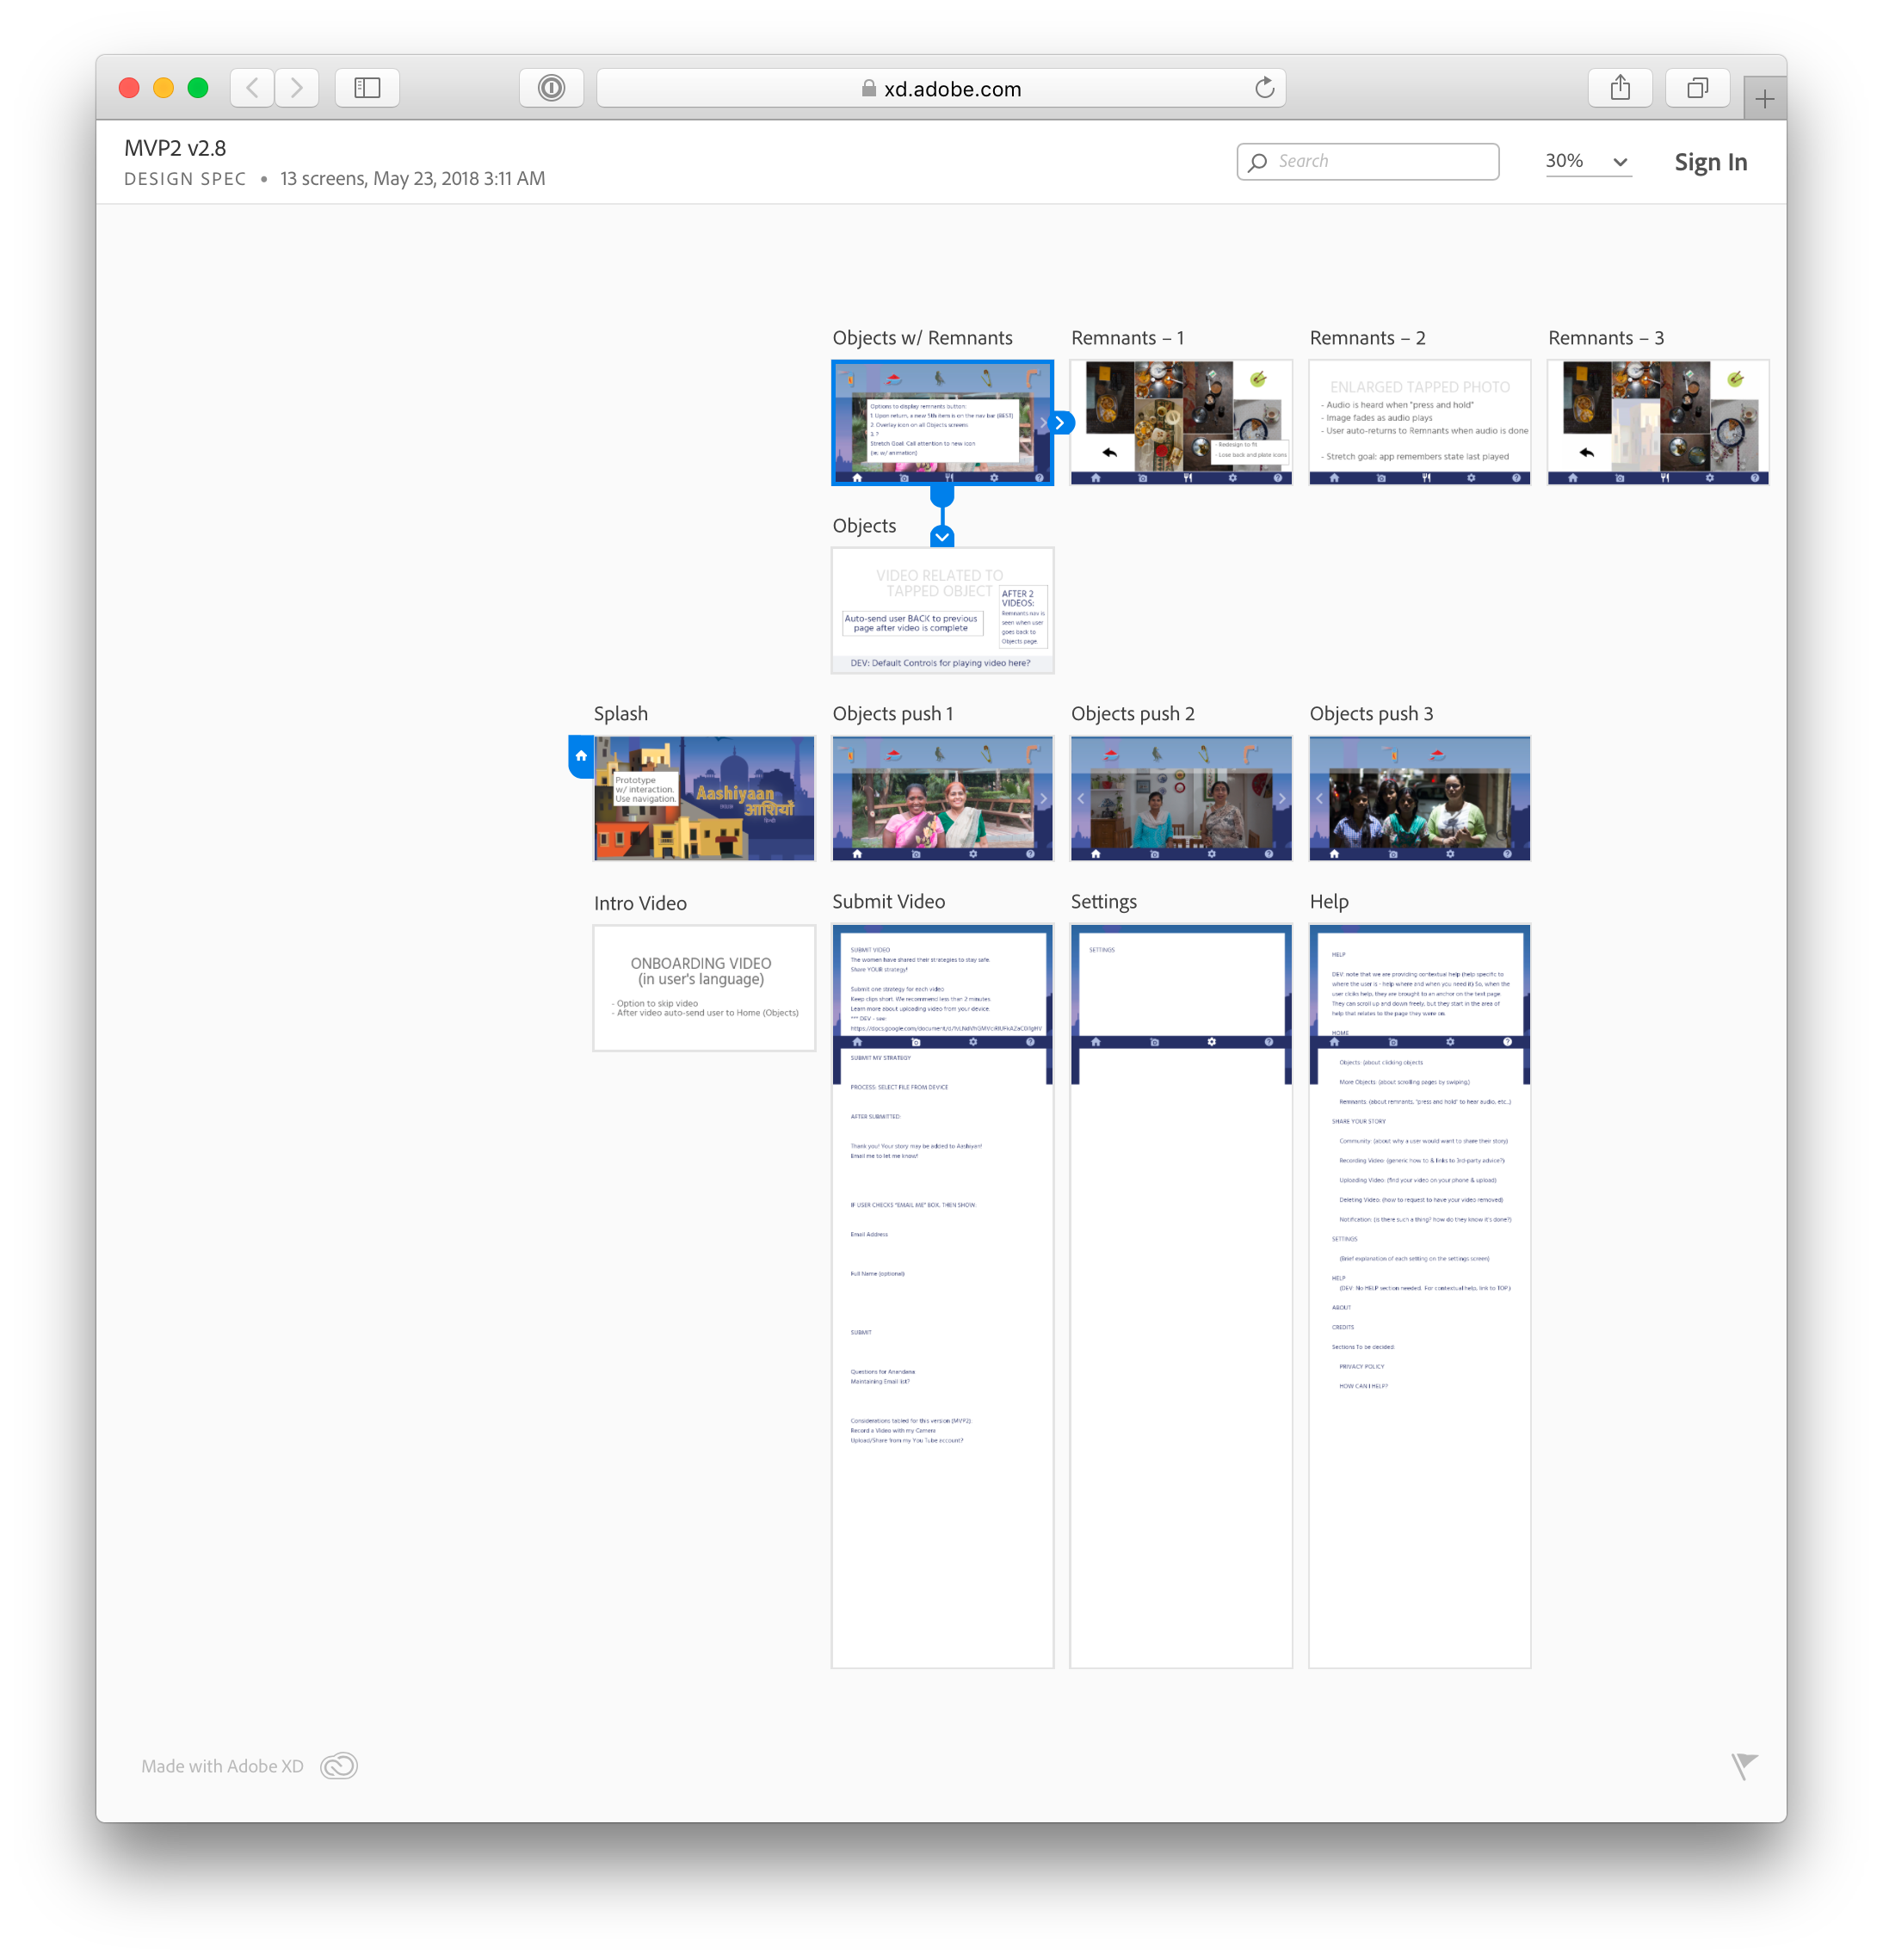 Low fidelity artboards in an Adobe XD document